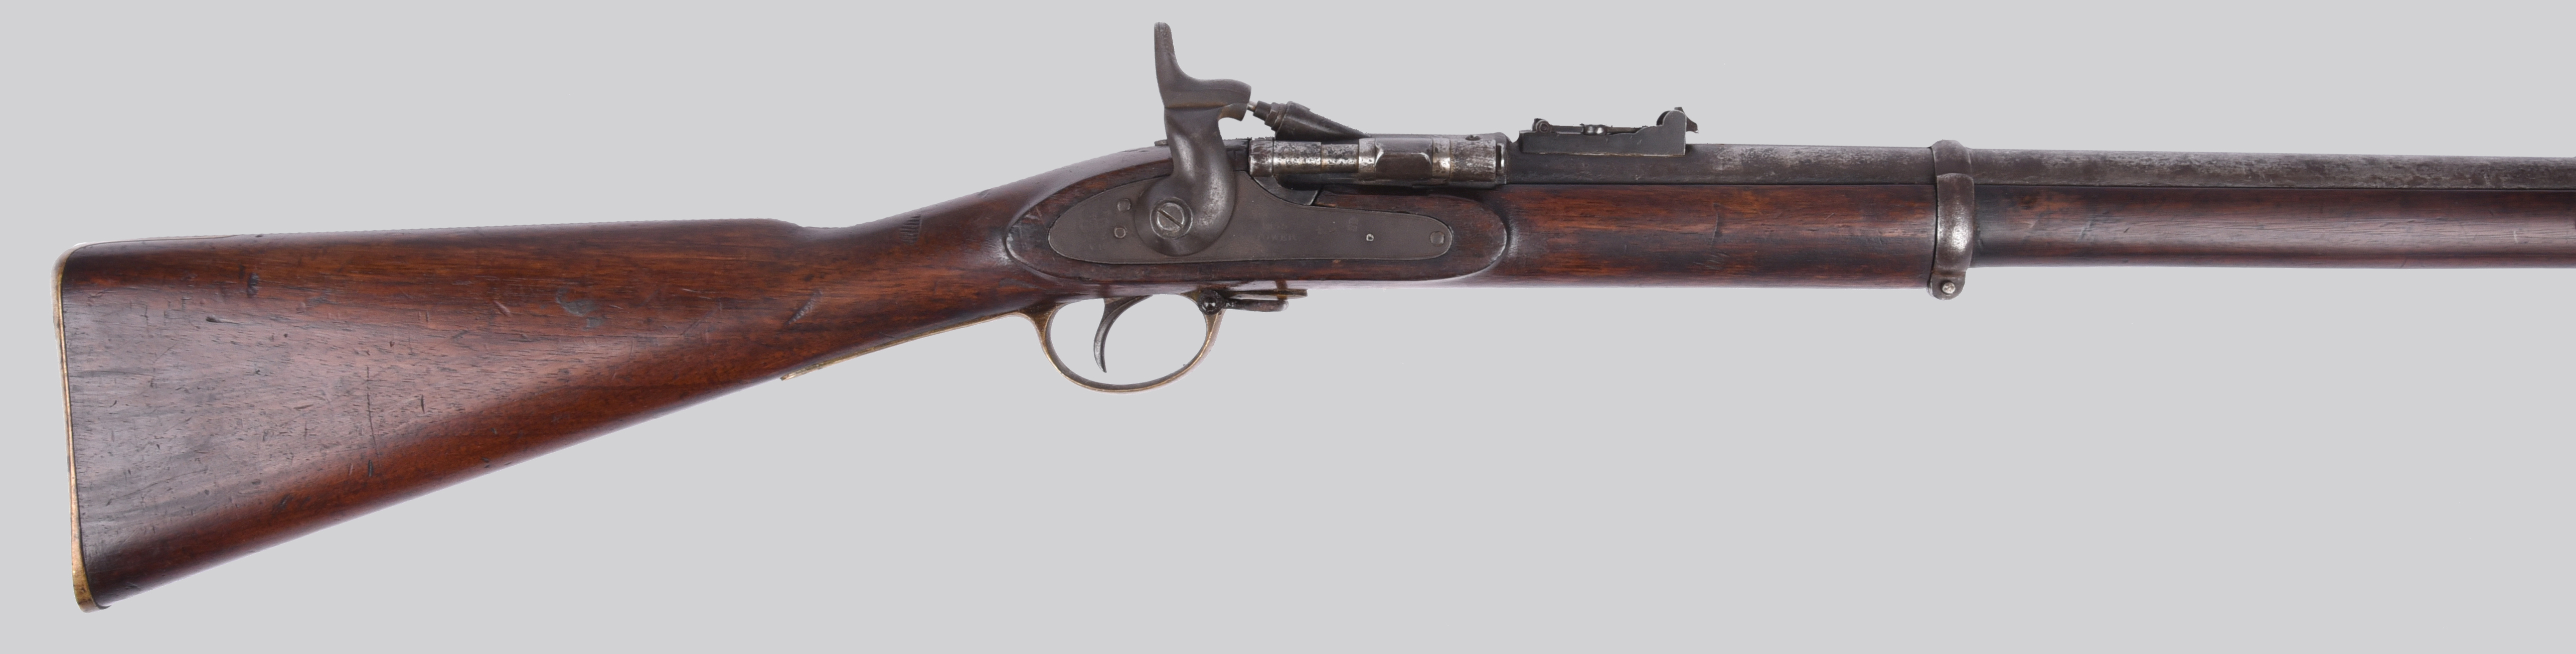 A .577 Snider Enfield three-band service rifle, barrel 36.5 in., breech with sold-out-of-service